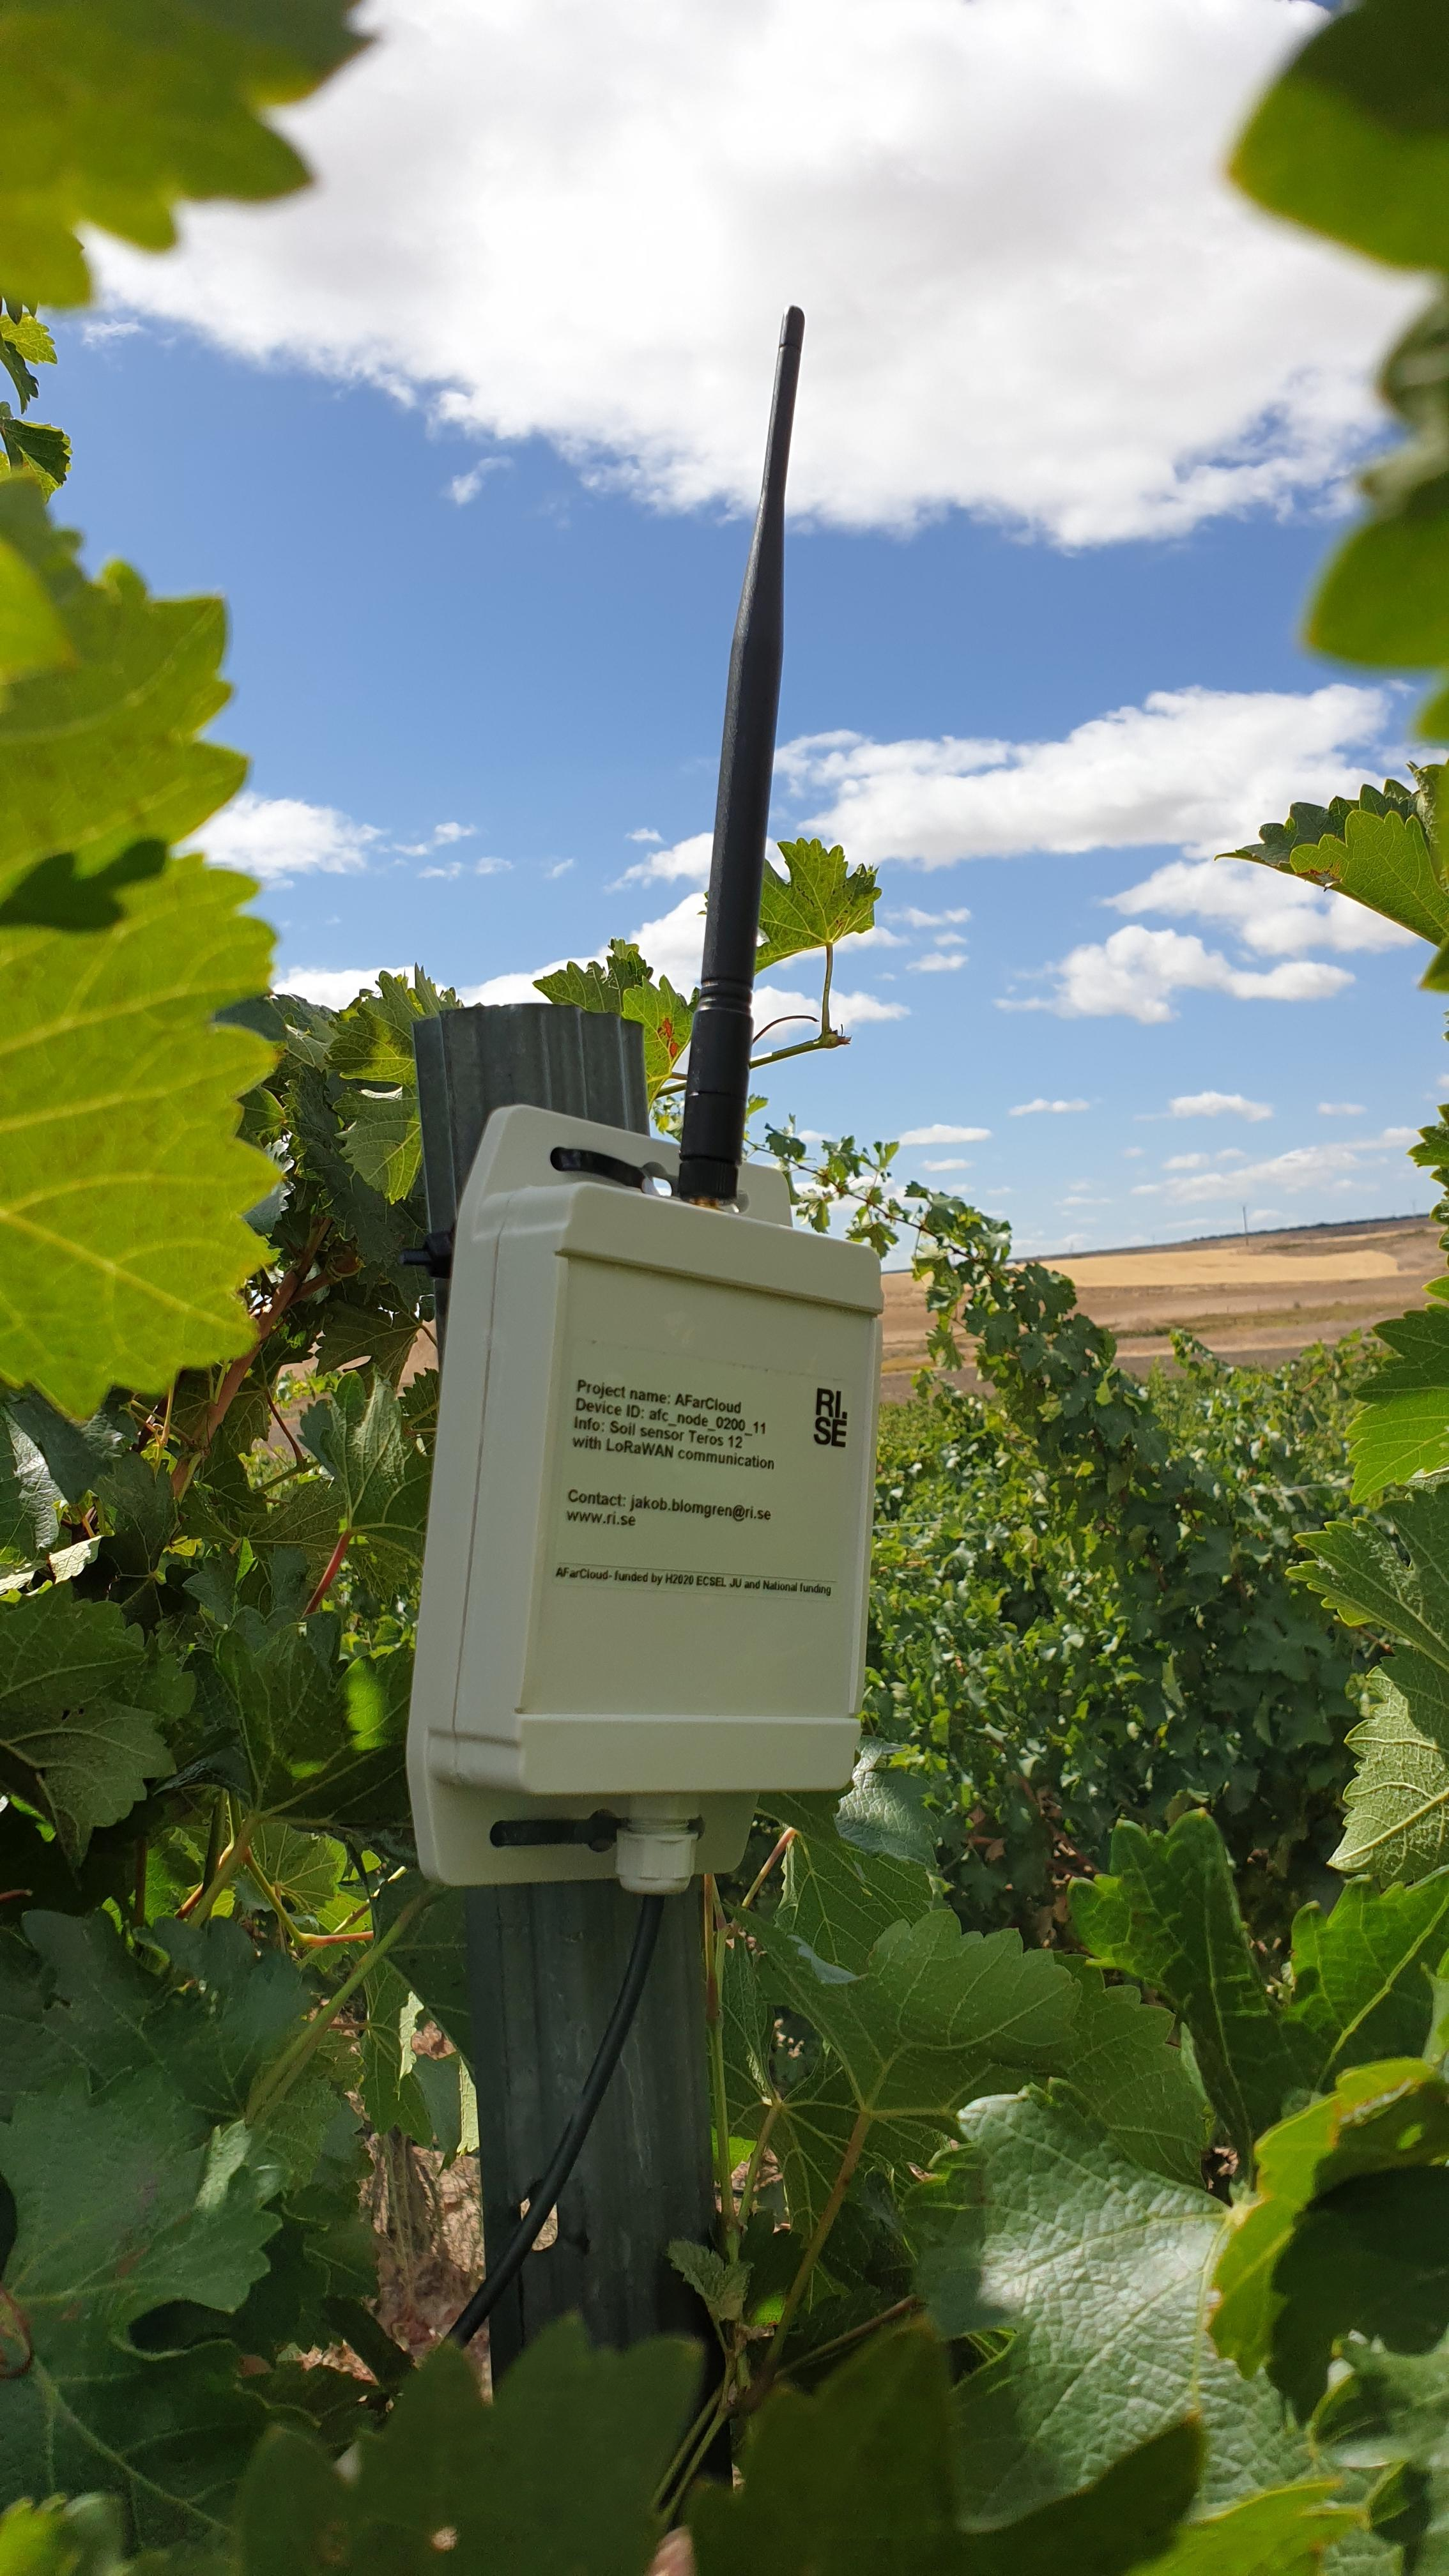 LoRaWAN sensor network for measuring soil properties at a vineyard